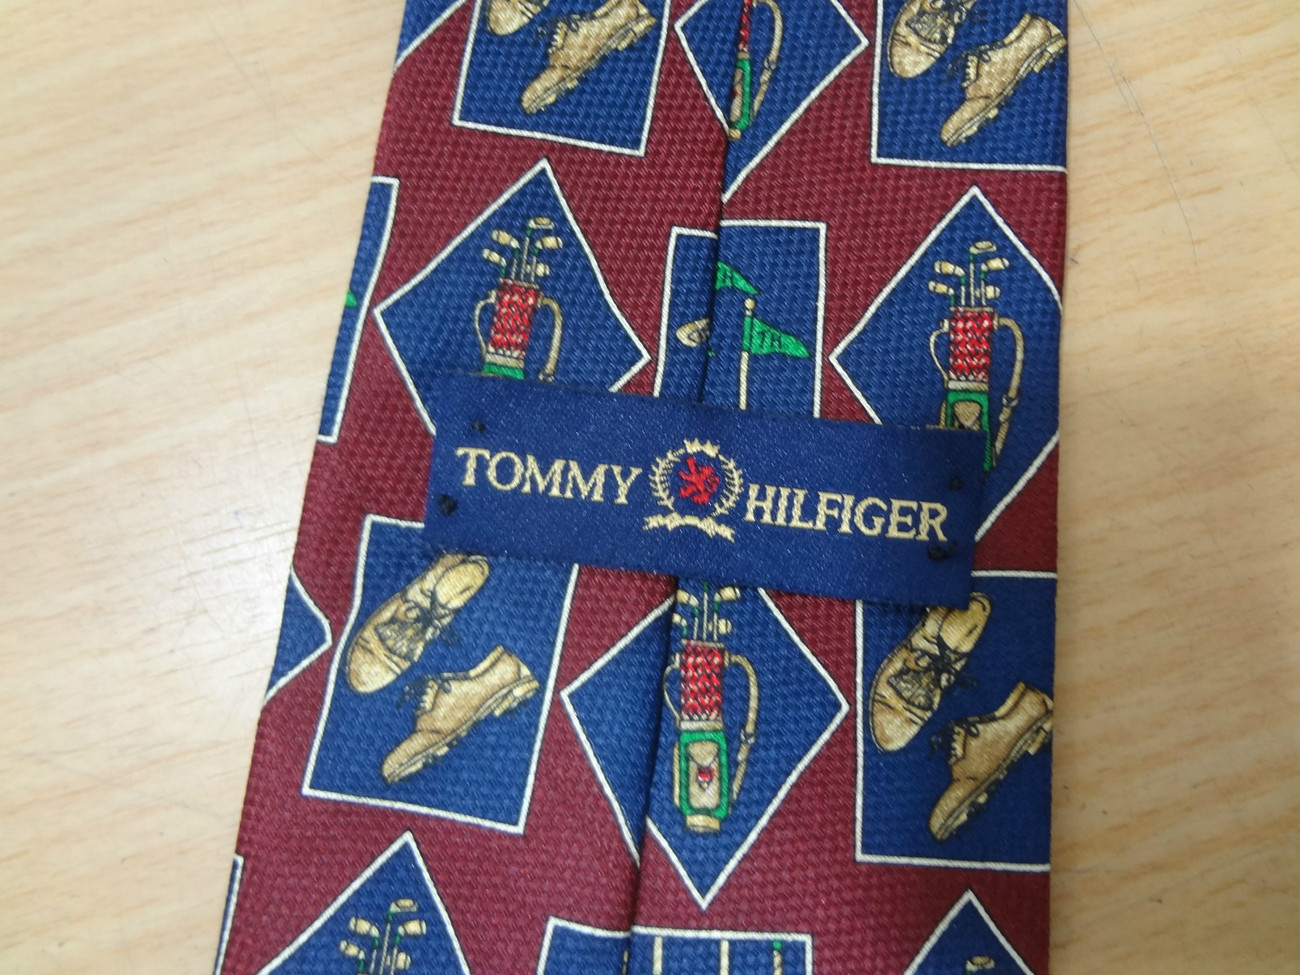 Tommy Hilfiger Burgundy Blue Golf Clubs Flag Pin Shoes Silk Necktie Father's Day